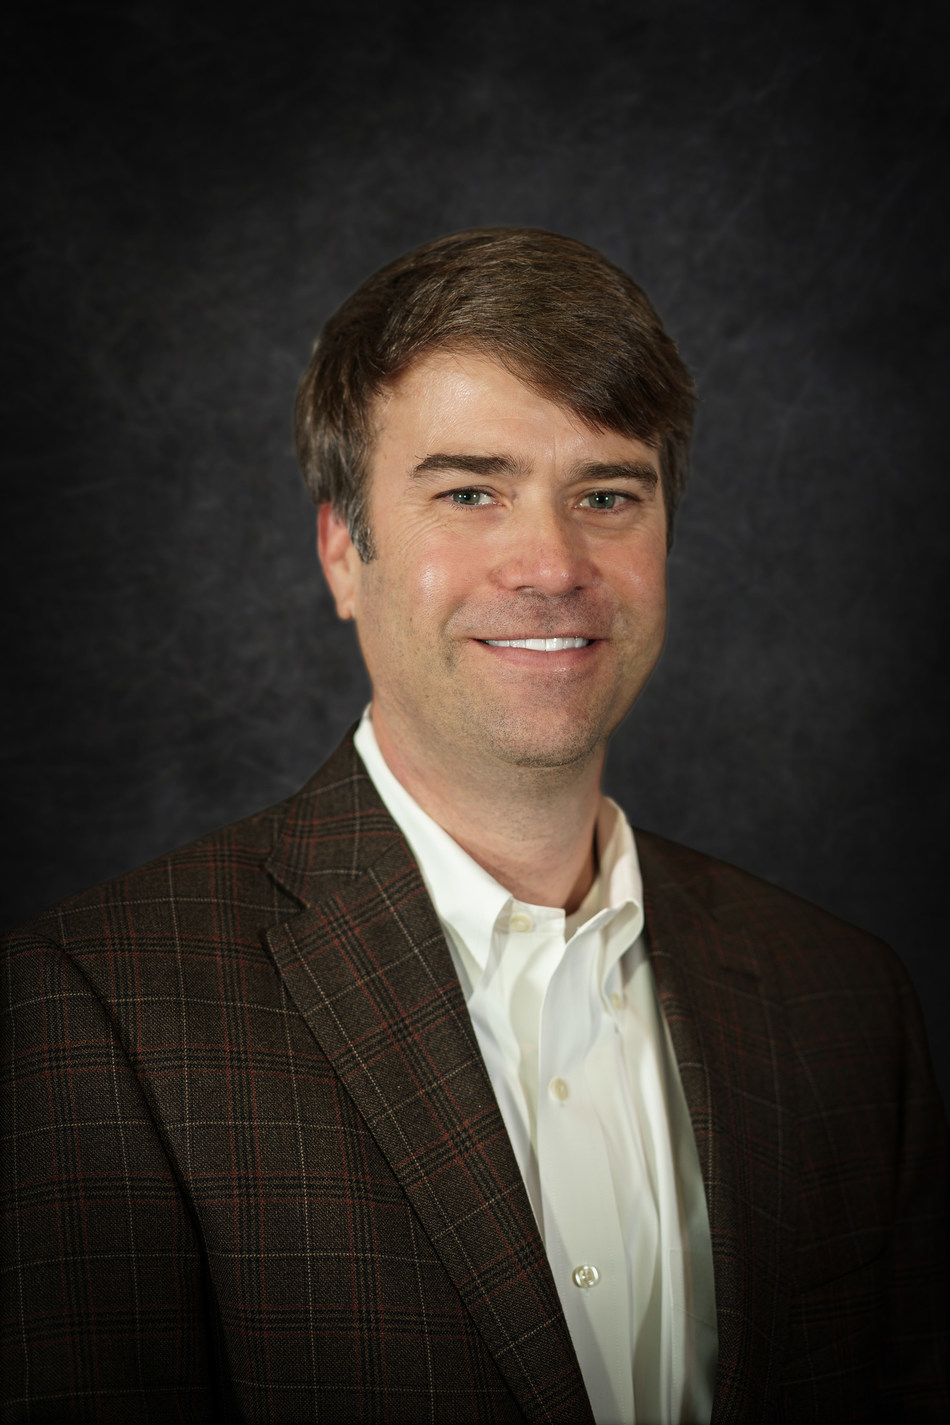 Jack Murphy - SixAxis welcomes Jack Murphy as Vice President of Sales as the executive leadership team rises to meet the demands of a growing company